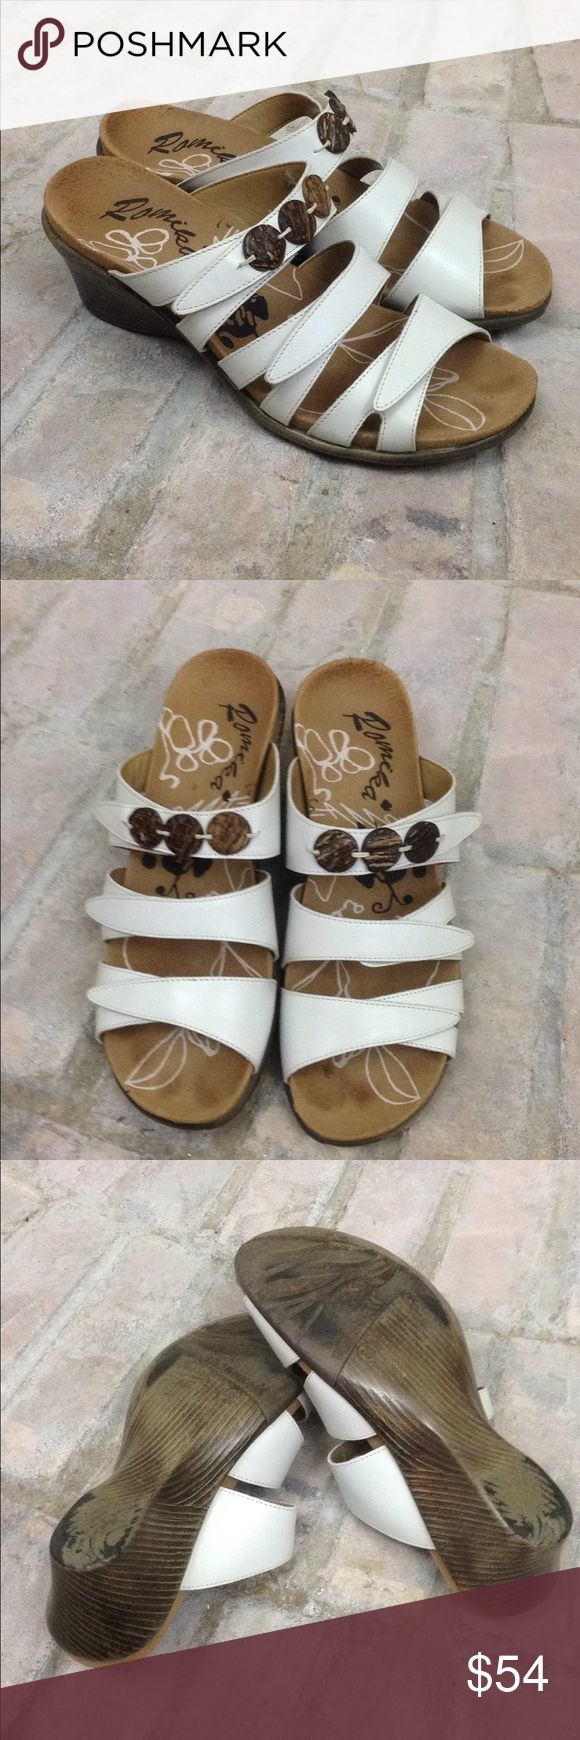 Romika Wedge Sandals Romika Wedge Sandals  Size 38/US Adjustable Velcro straps  Great preowned condition/minor scuffs near toe/see pictures  Any questions just ask! Romika Shoes